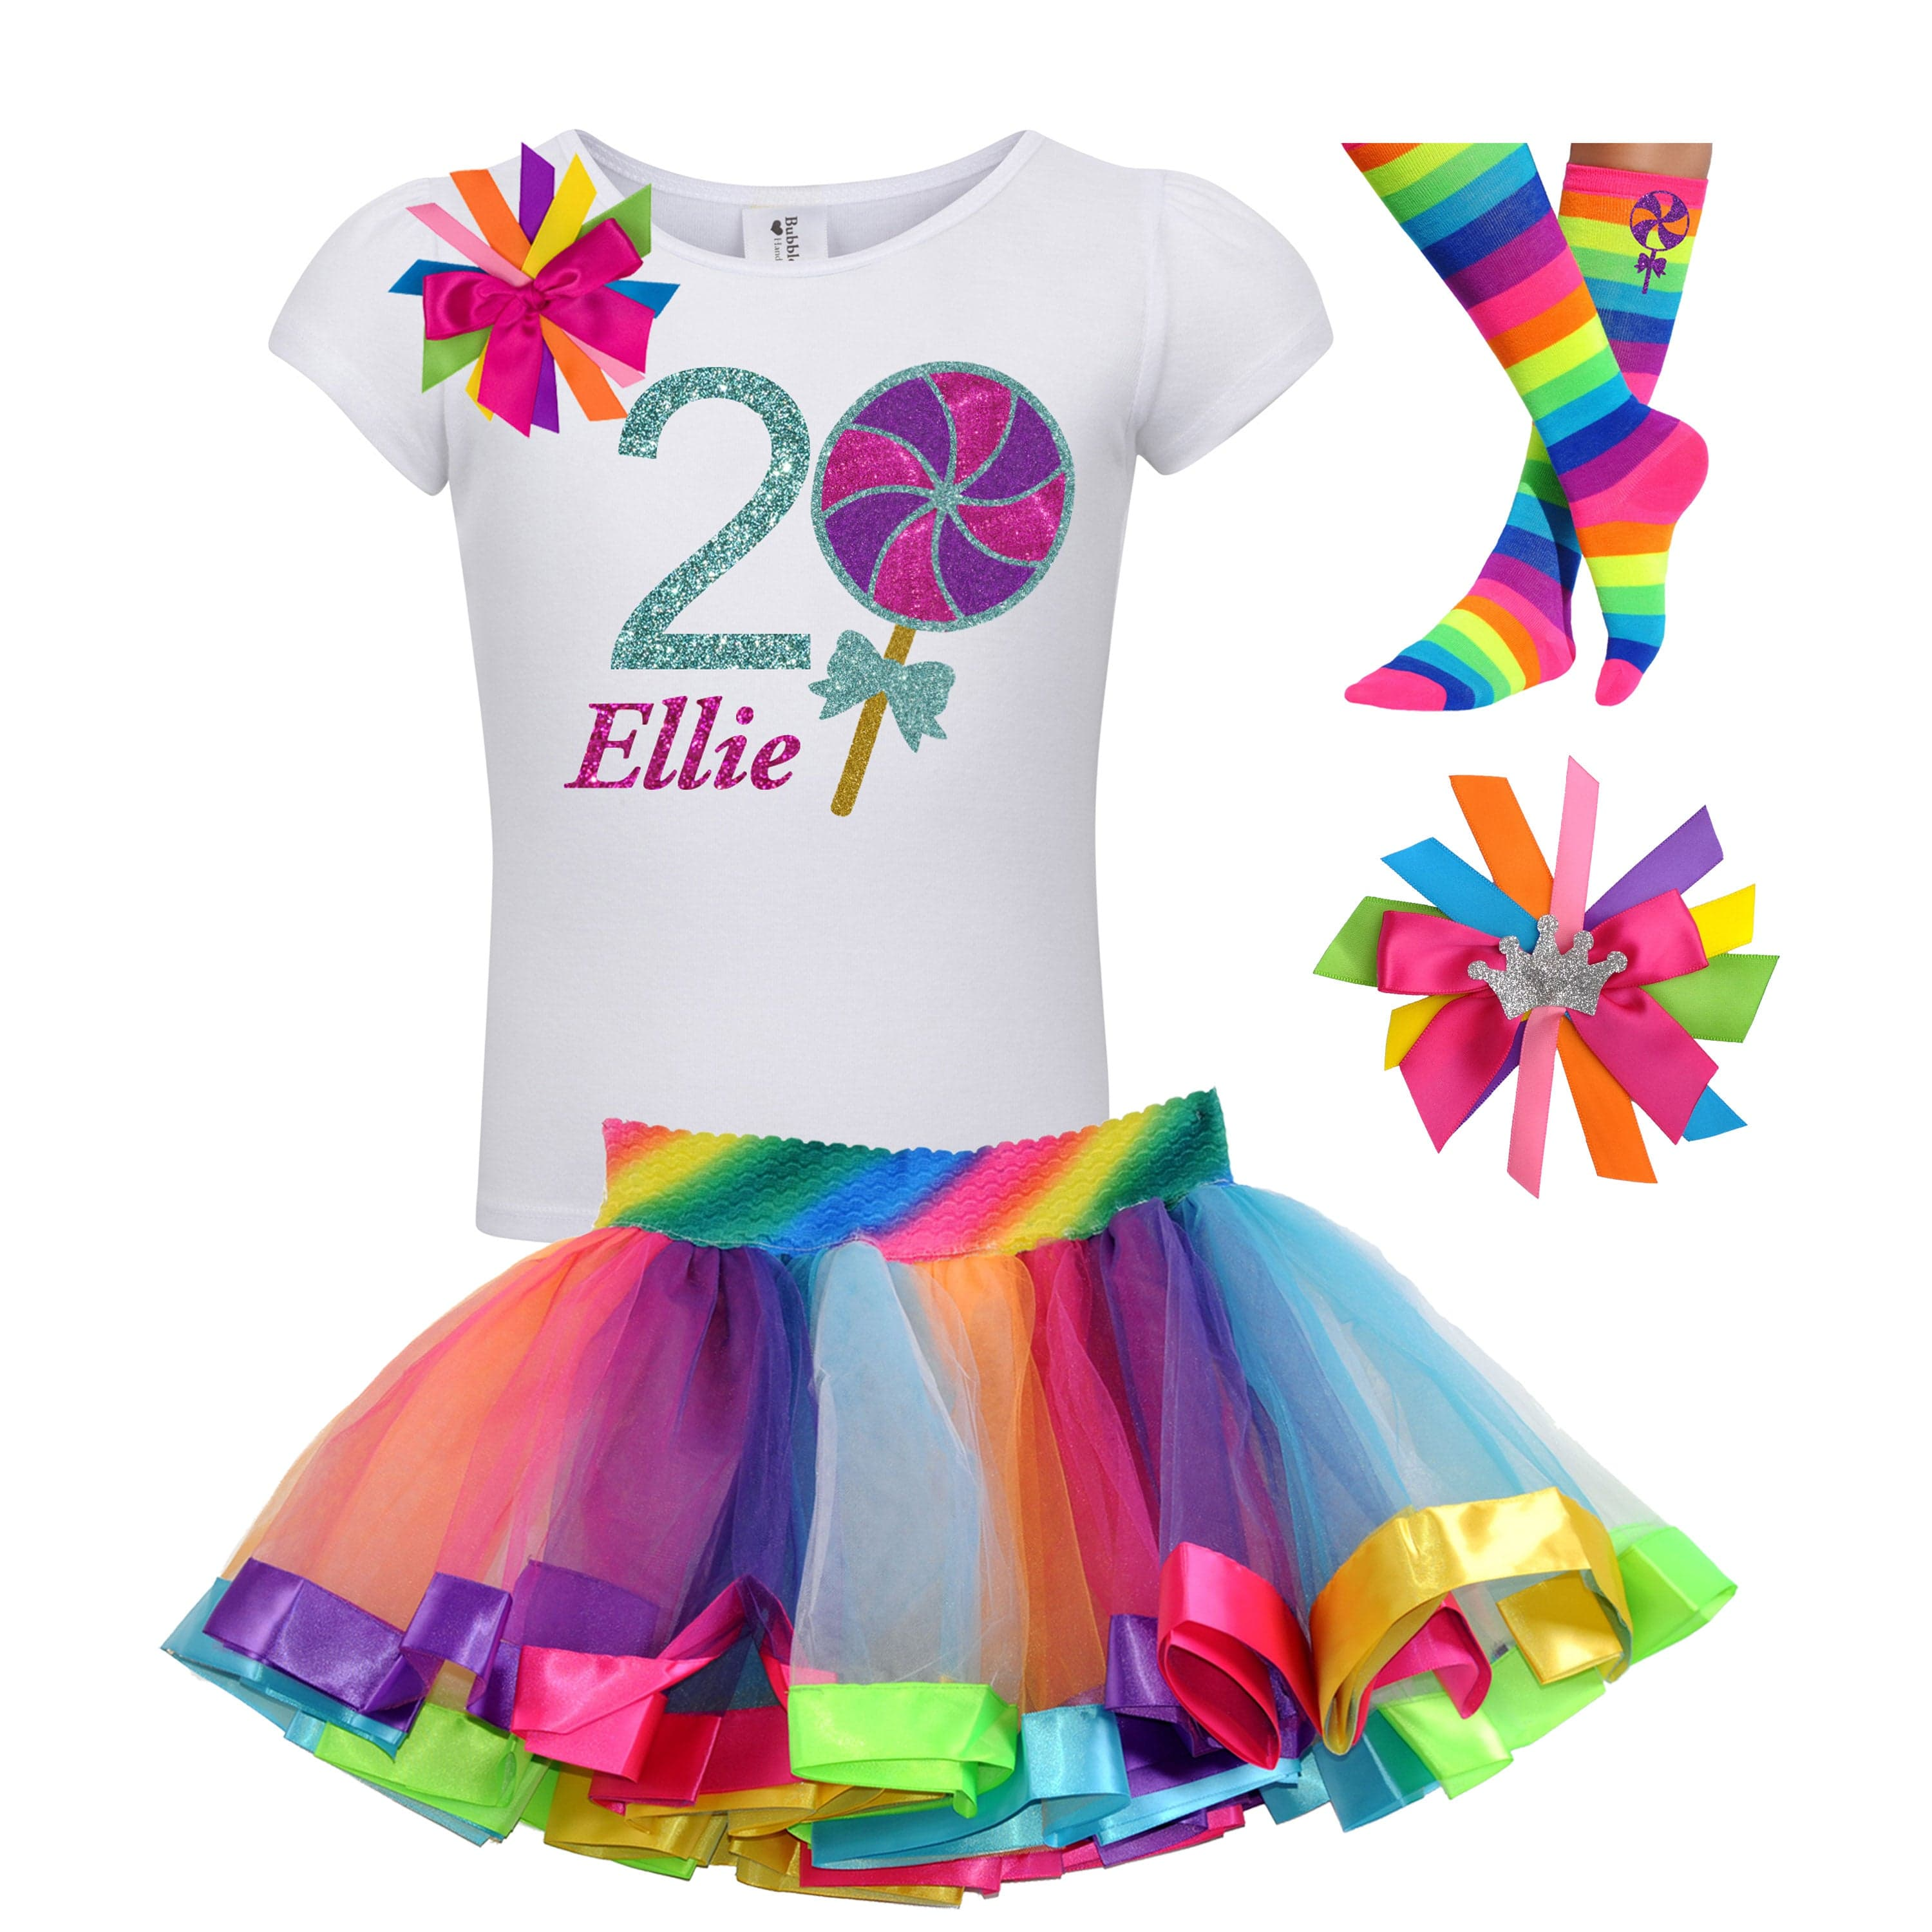 Lollipop Shirt 2nd Birthday Girls Rainbow Tutu Party Outfit 4PC Set